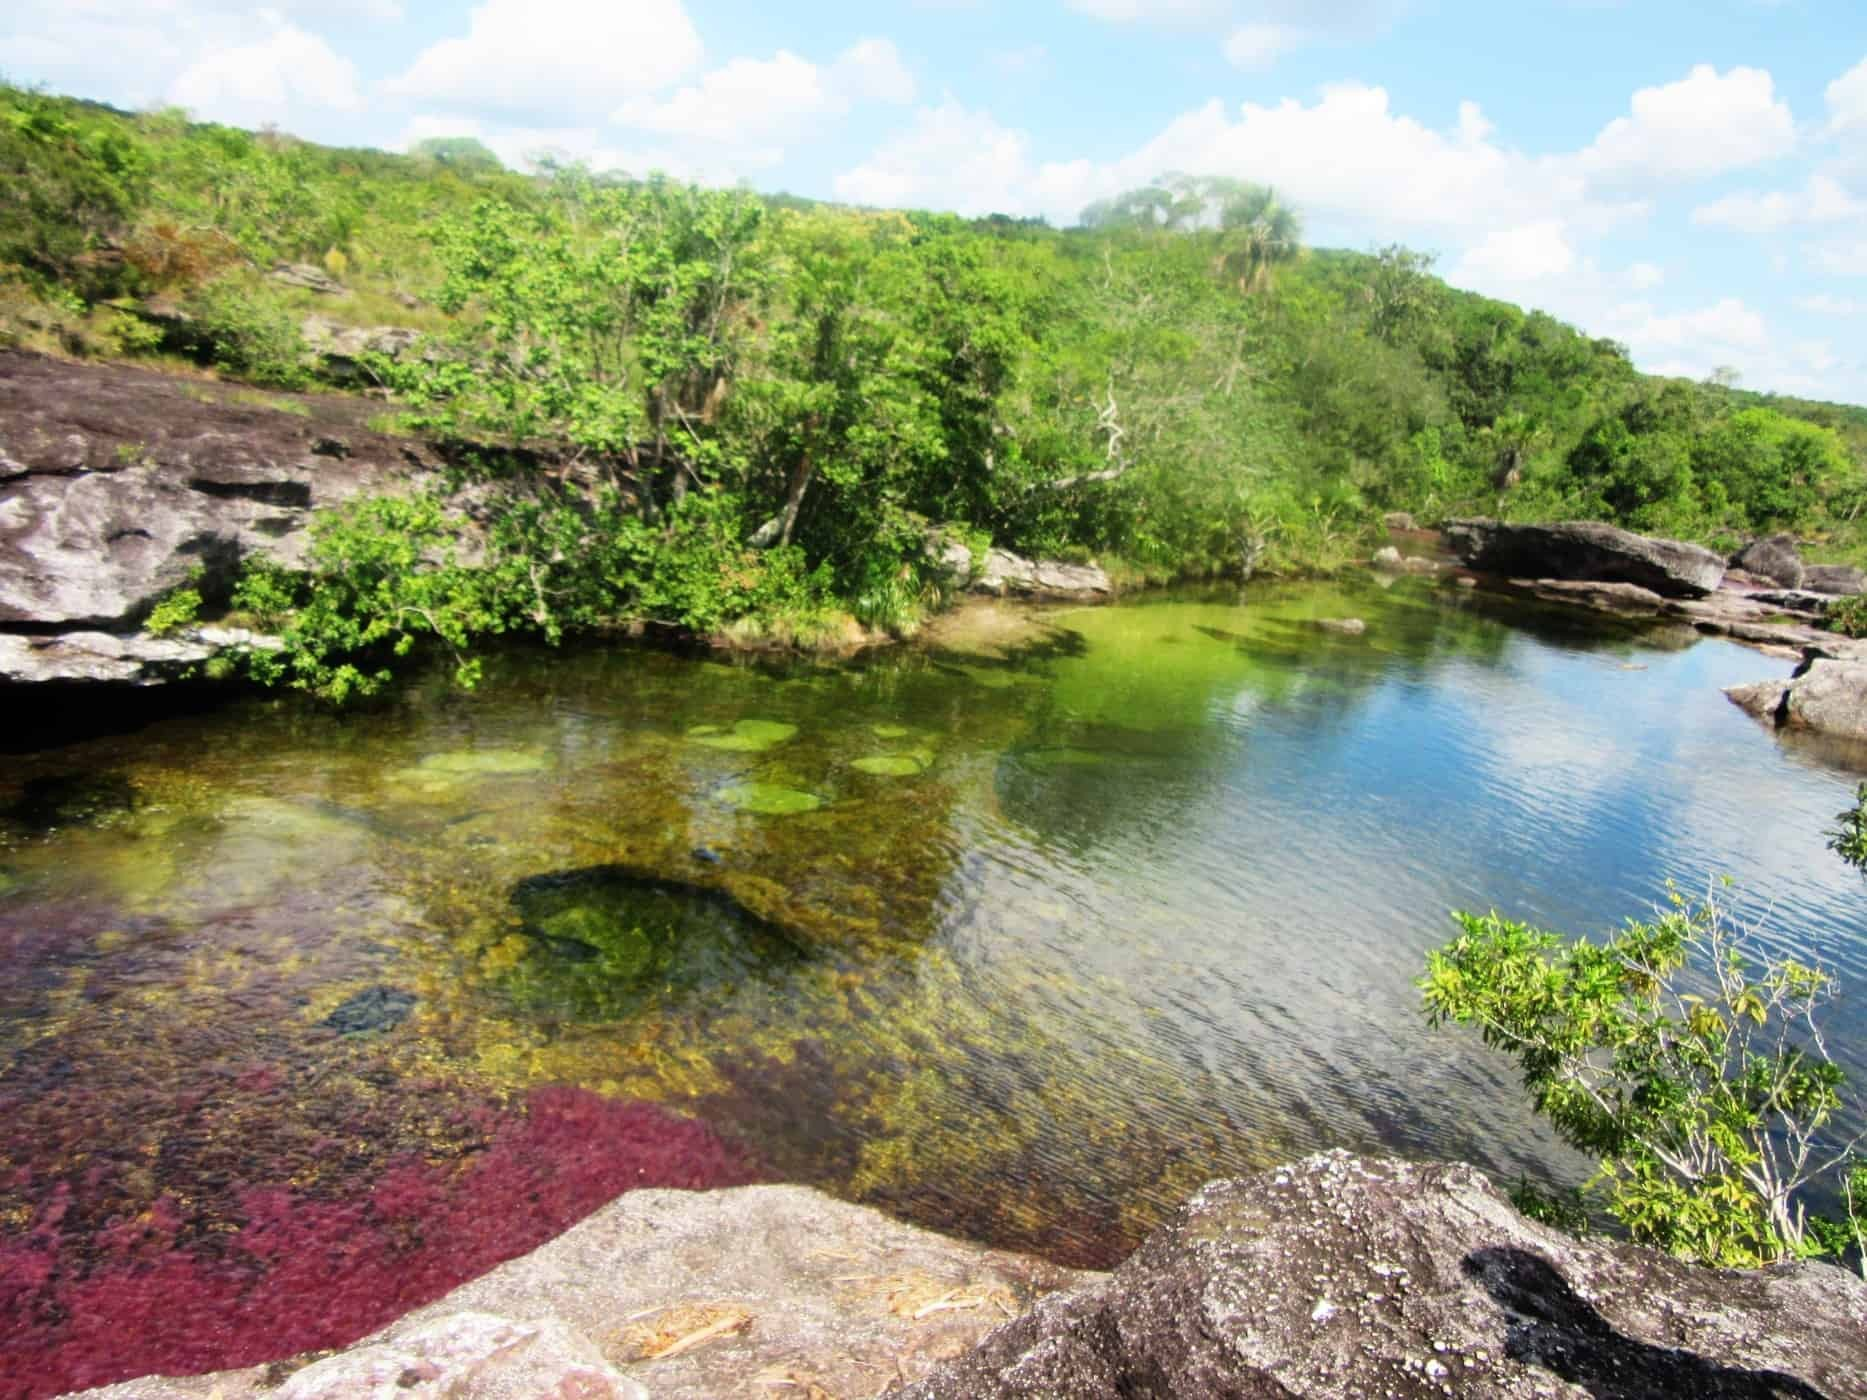 Visit Caño Cristales on a guided tour from La Macarena, Colombia.